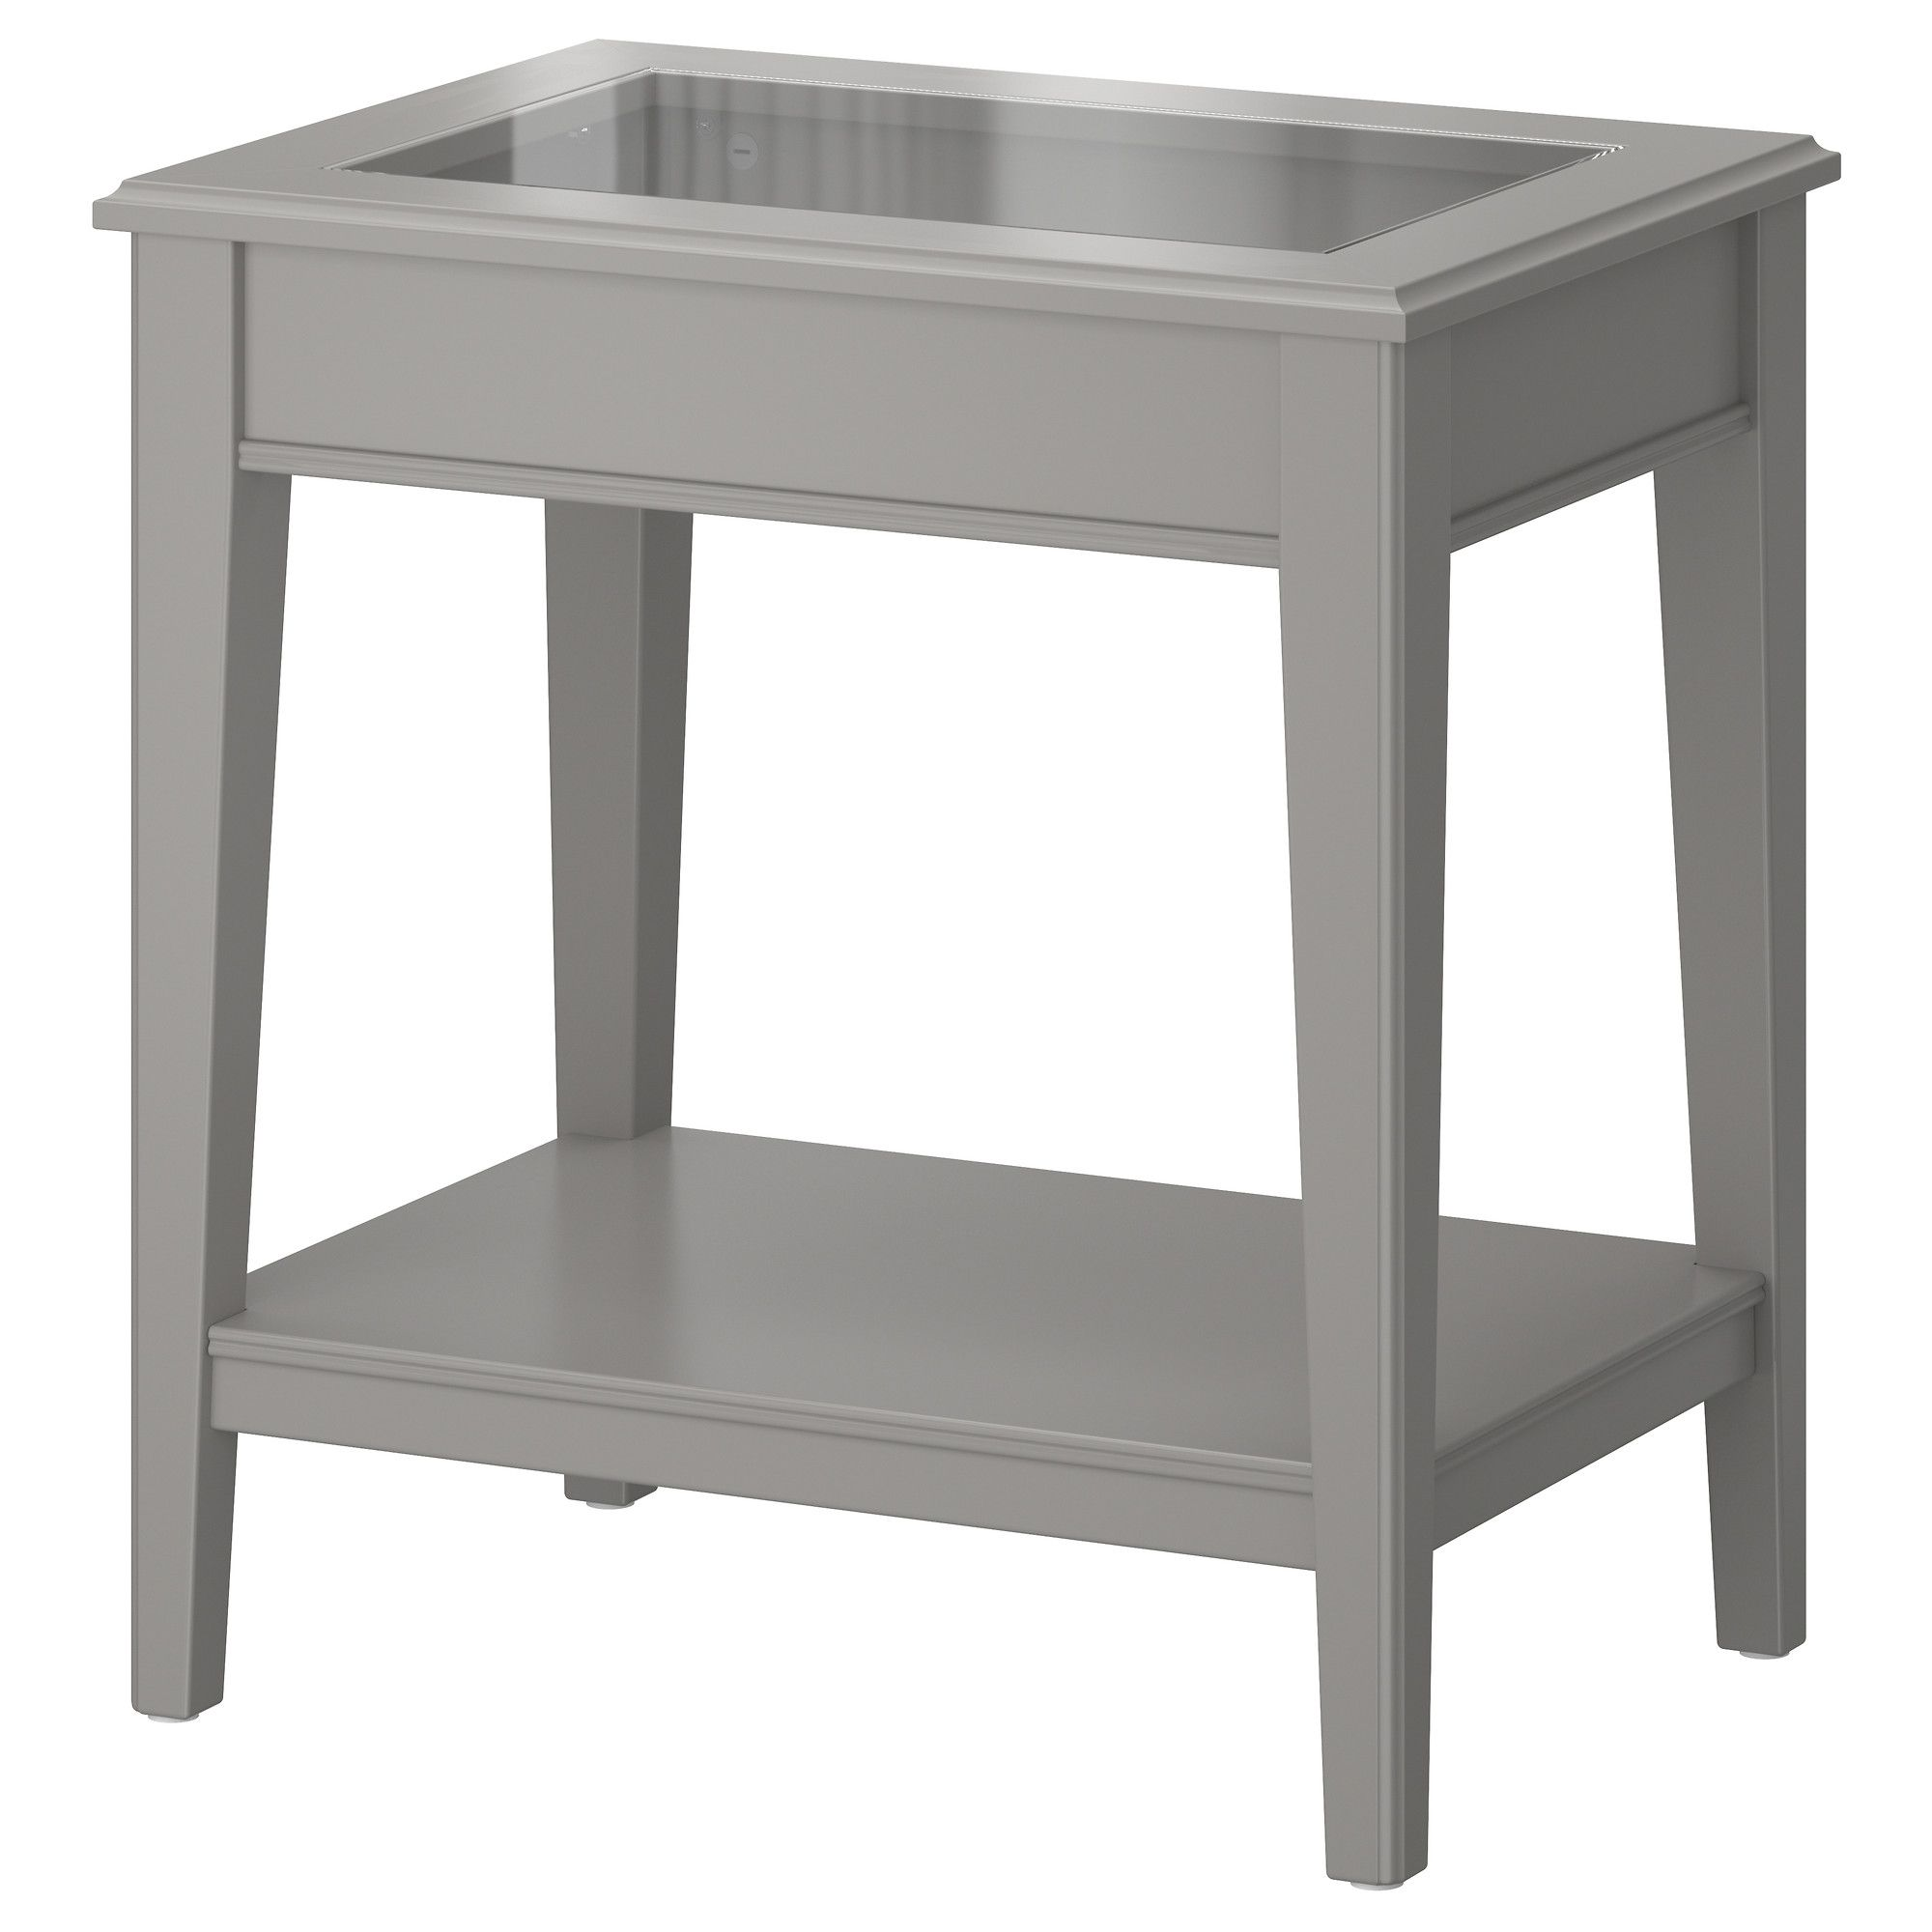 LIATORP Side Table   Gray/glass   IKEA (alternate Layout)